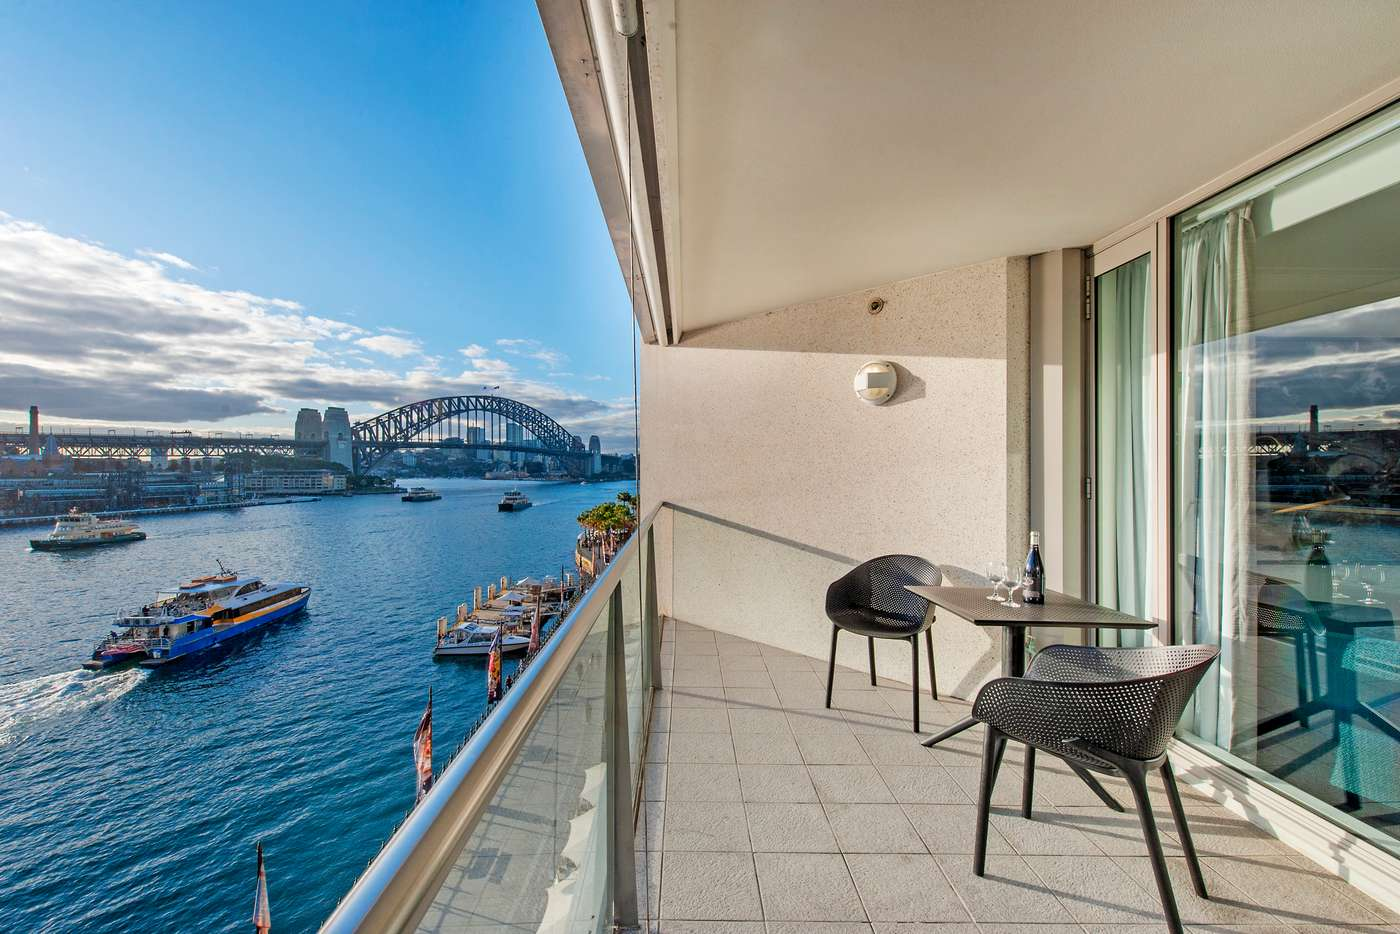 Main view of Homely apartment listing, 606/61 Macquarie Street, Sydney NSW 2000